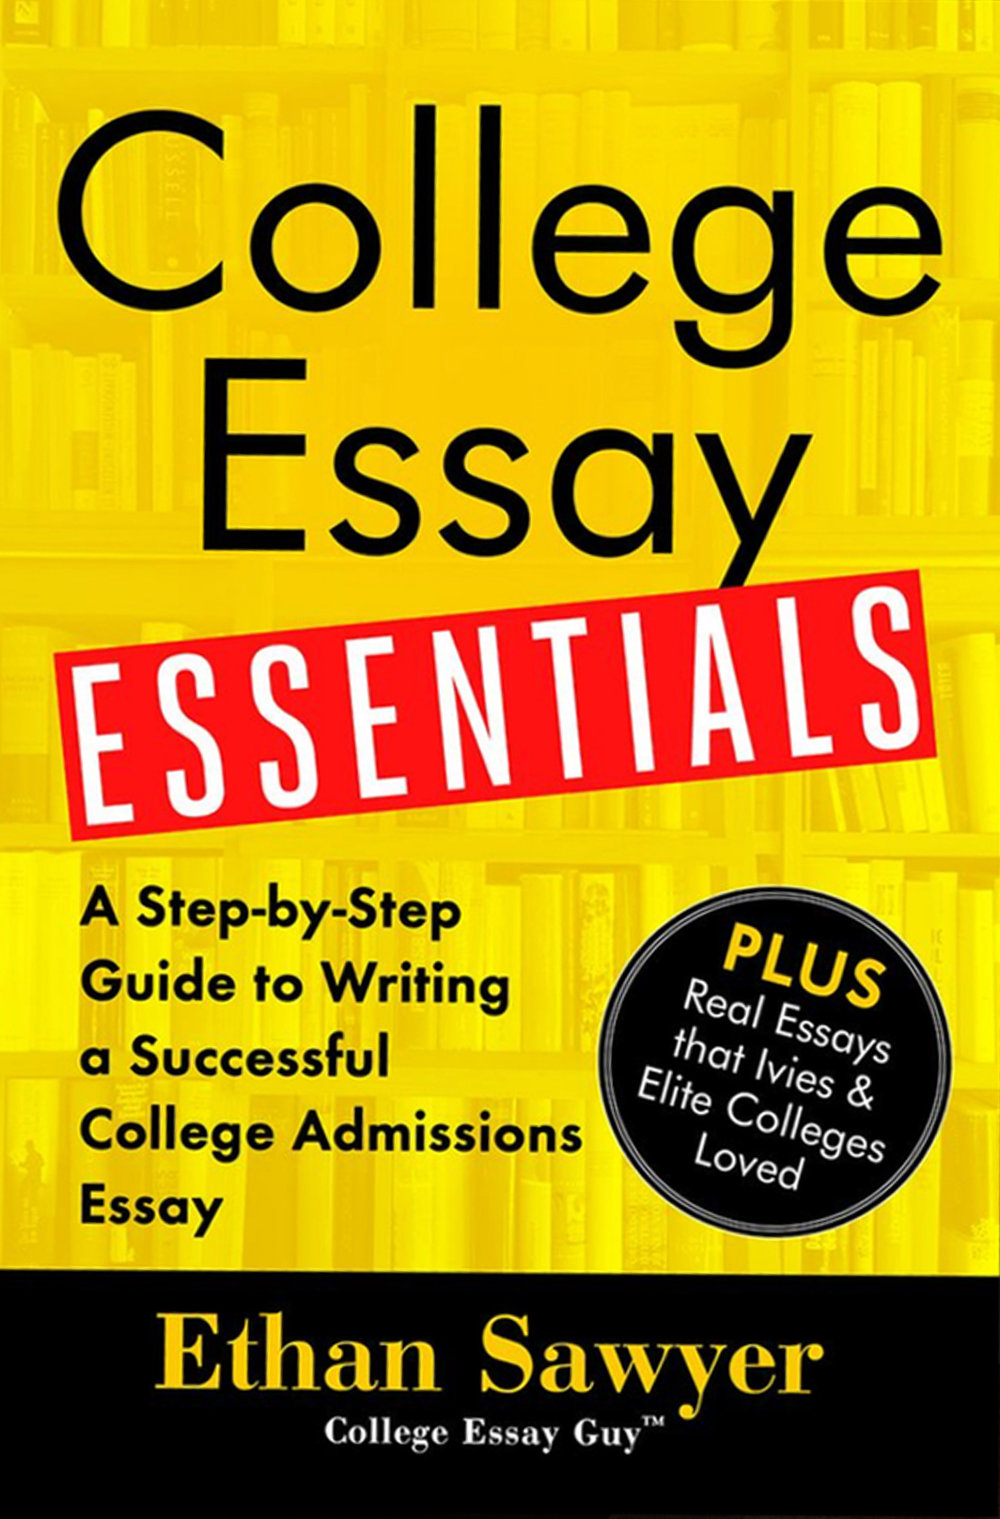 three wishes essay persuasive speech essay examples persuasive  100 brave and interesting questions college essay guy get inspired order the new book college essay